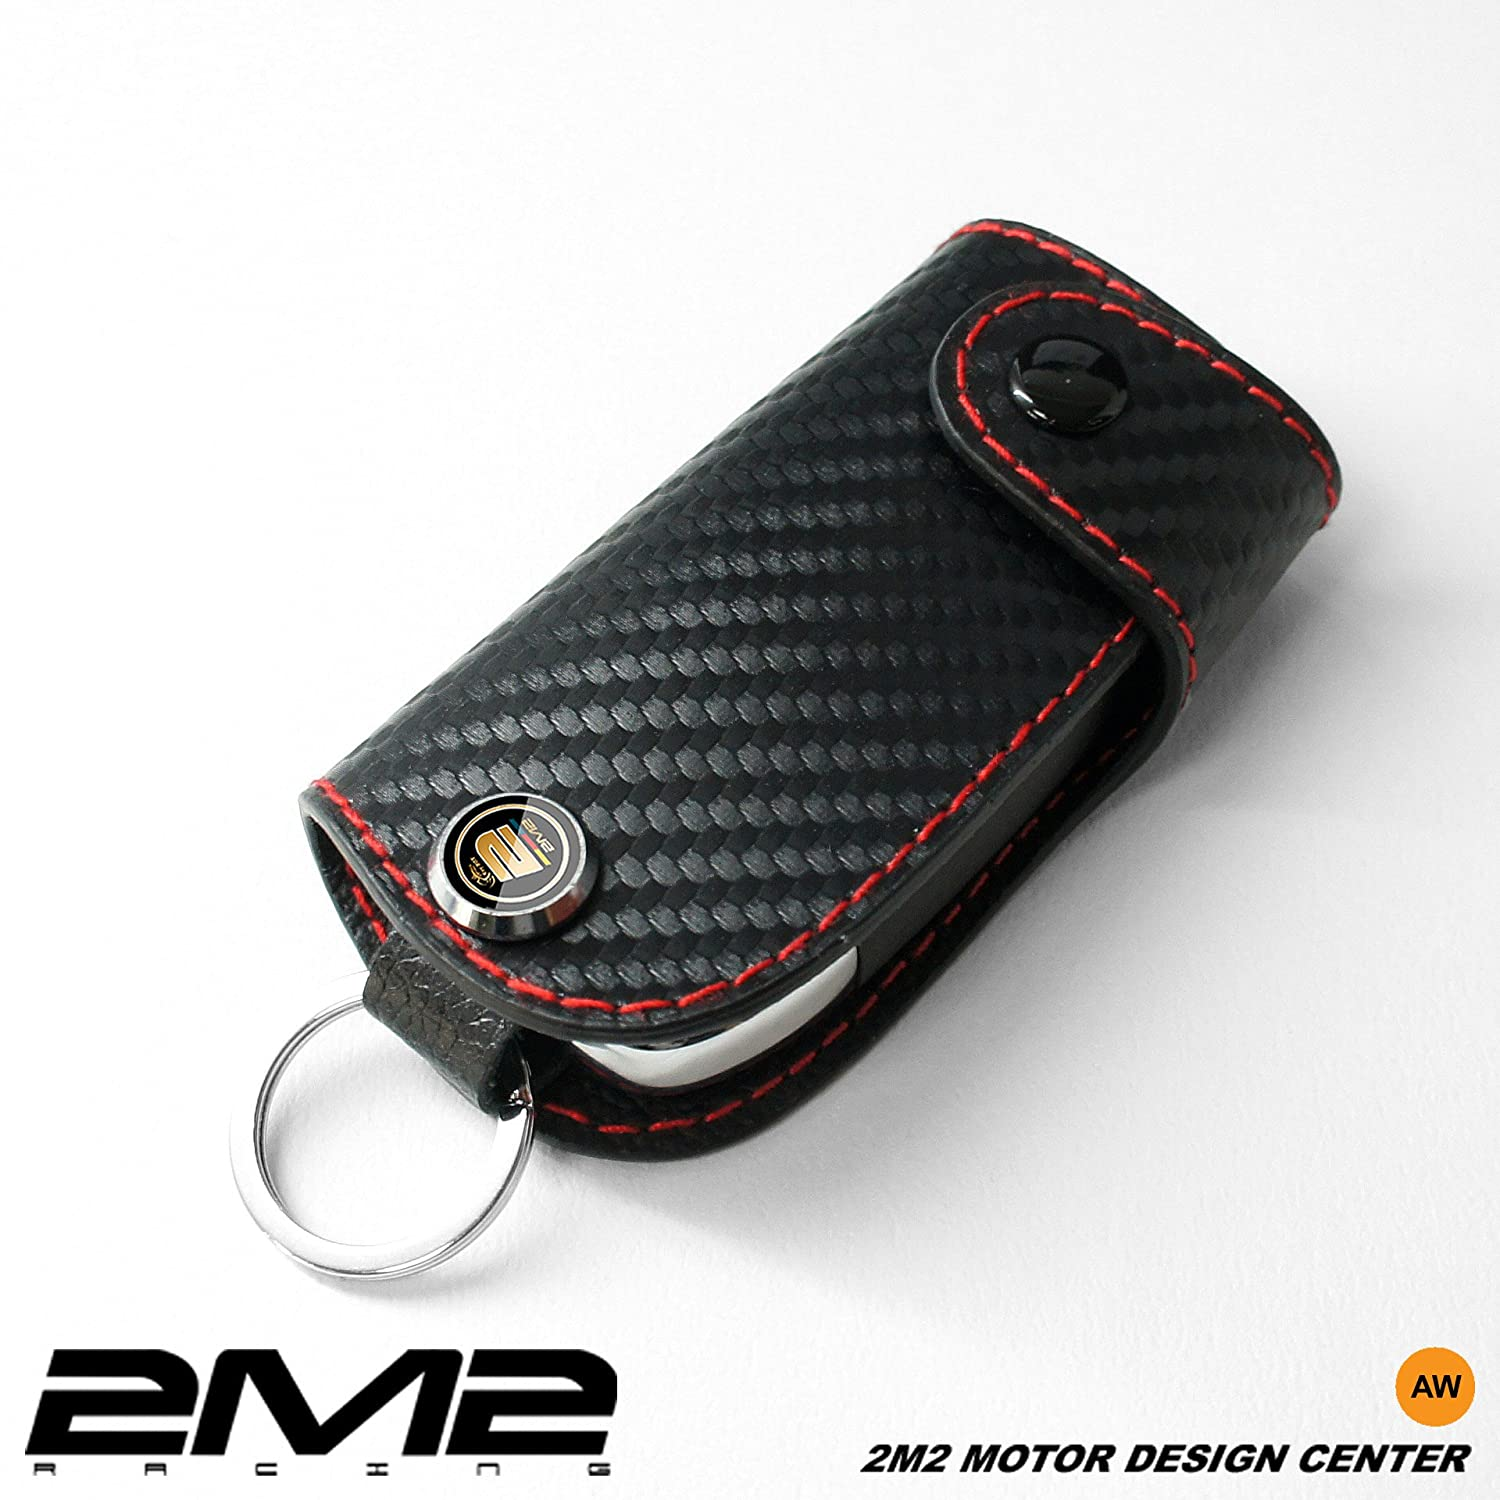 LMA02-5-B Leather key fob holder case chain cover For MAZDA2 MAZDA3 MAZDA5 MAZDA6 SPORTS MX-5 MIATA HARD TOP MAZDASPEED3 CX-9 CX-5 2M2